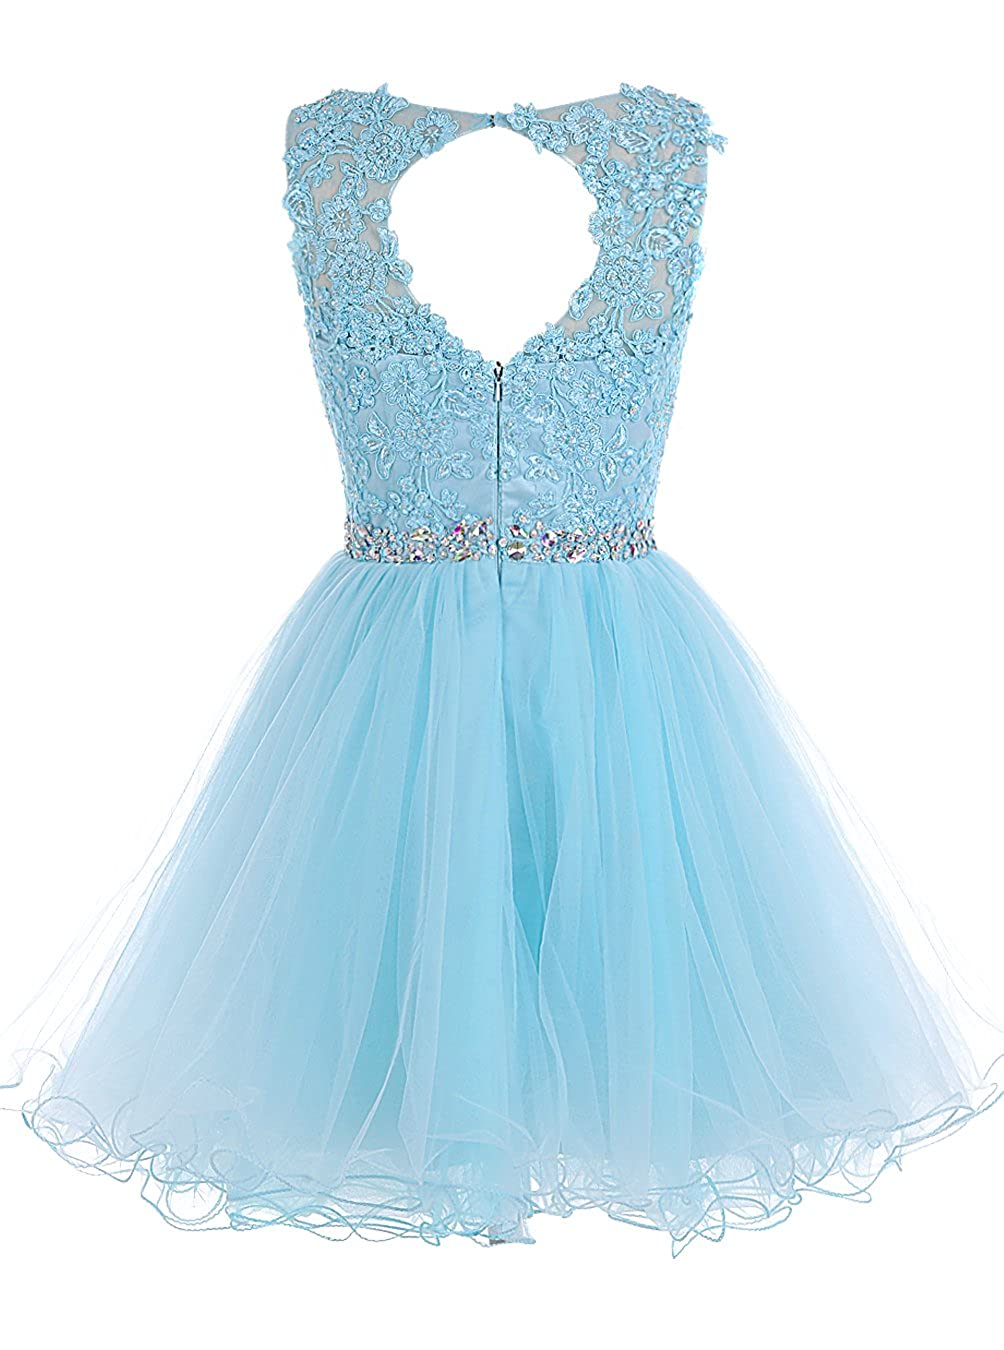 7ed23107e017 Amazon.com: Tideclothes ALAGIRLS Short Beaded Prom Dress Tulle Applique  Homecoming Gowns: Clothing